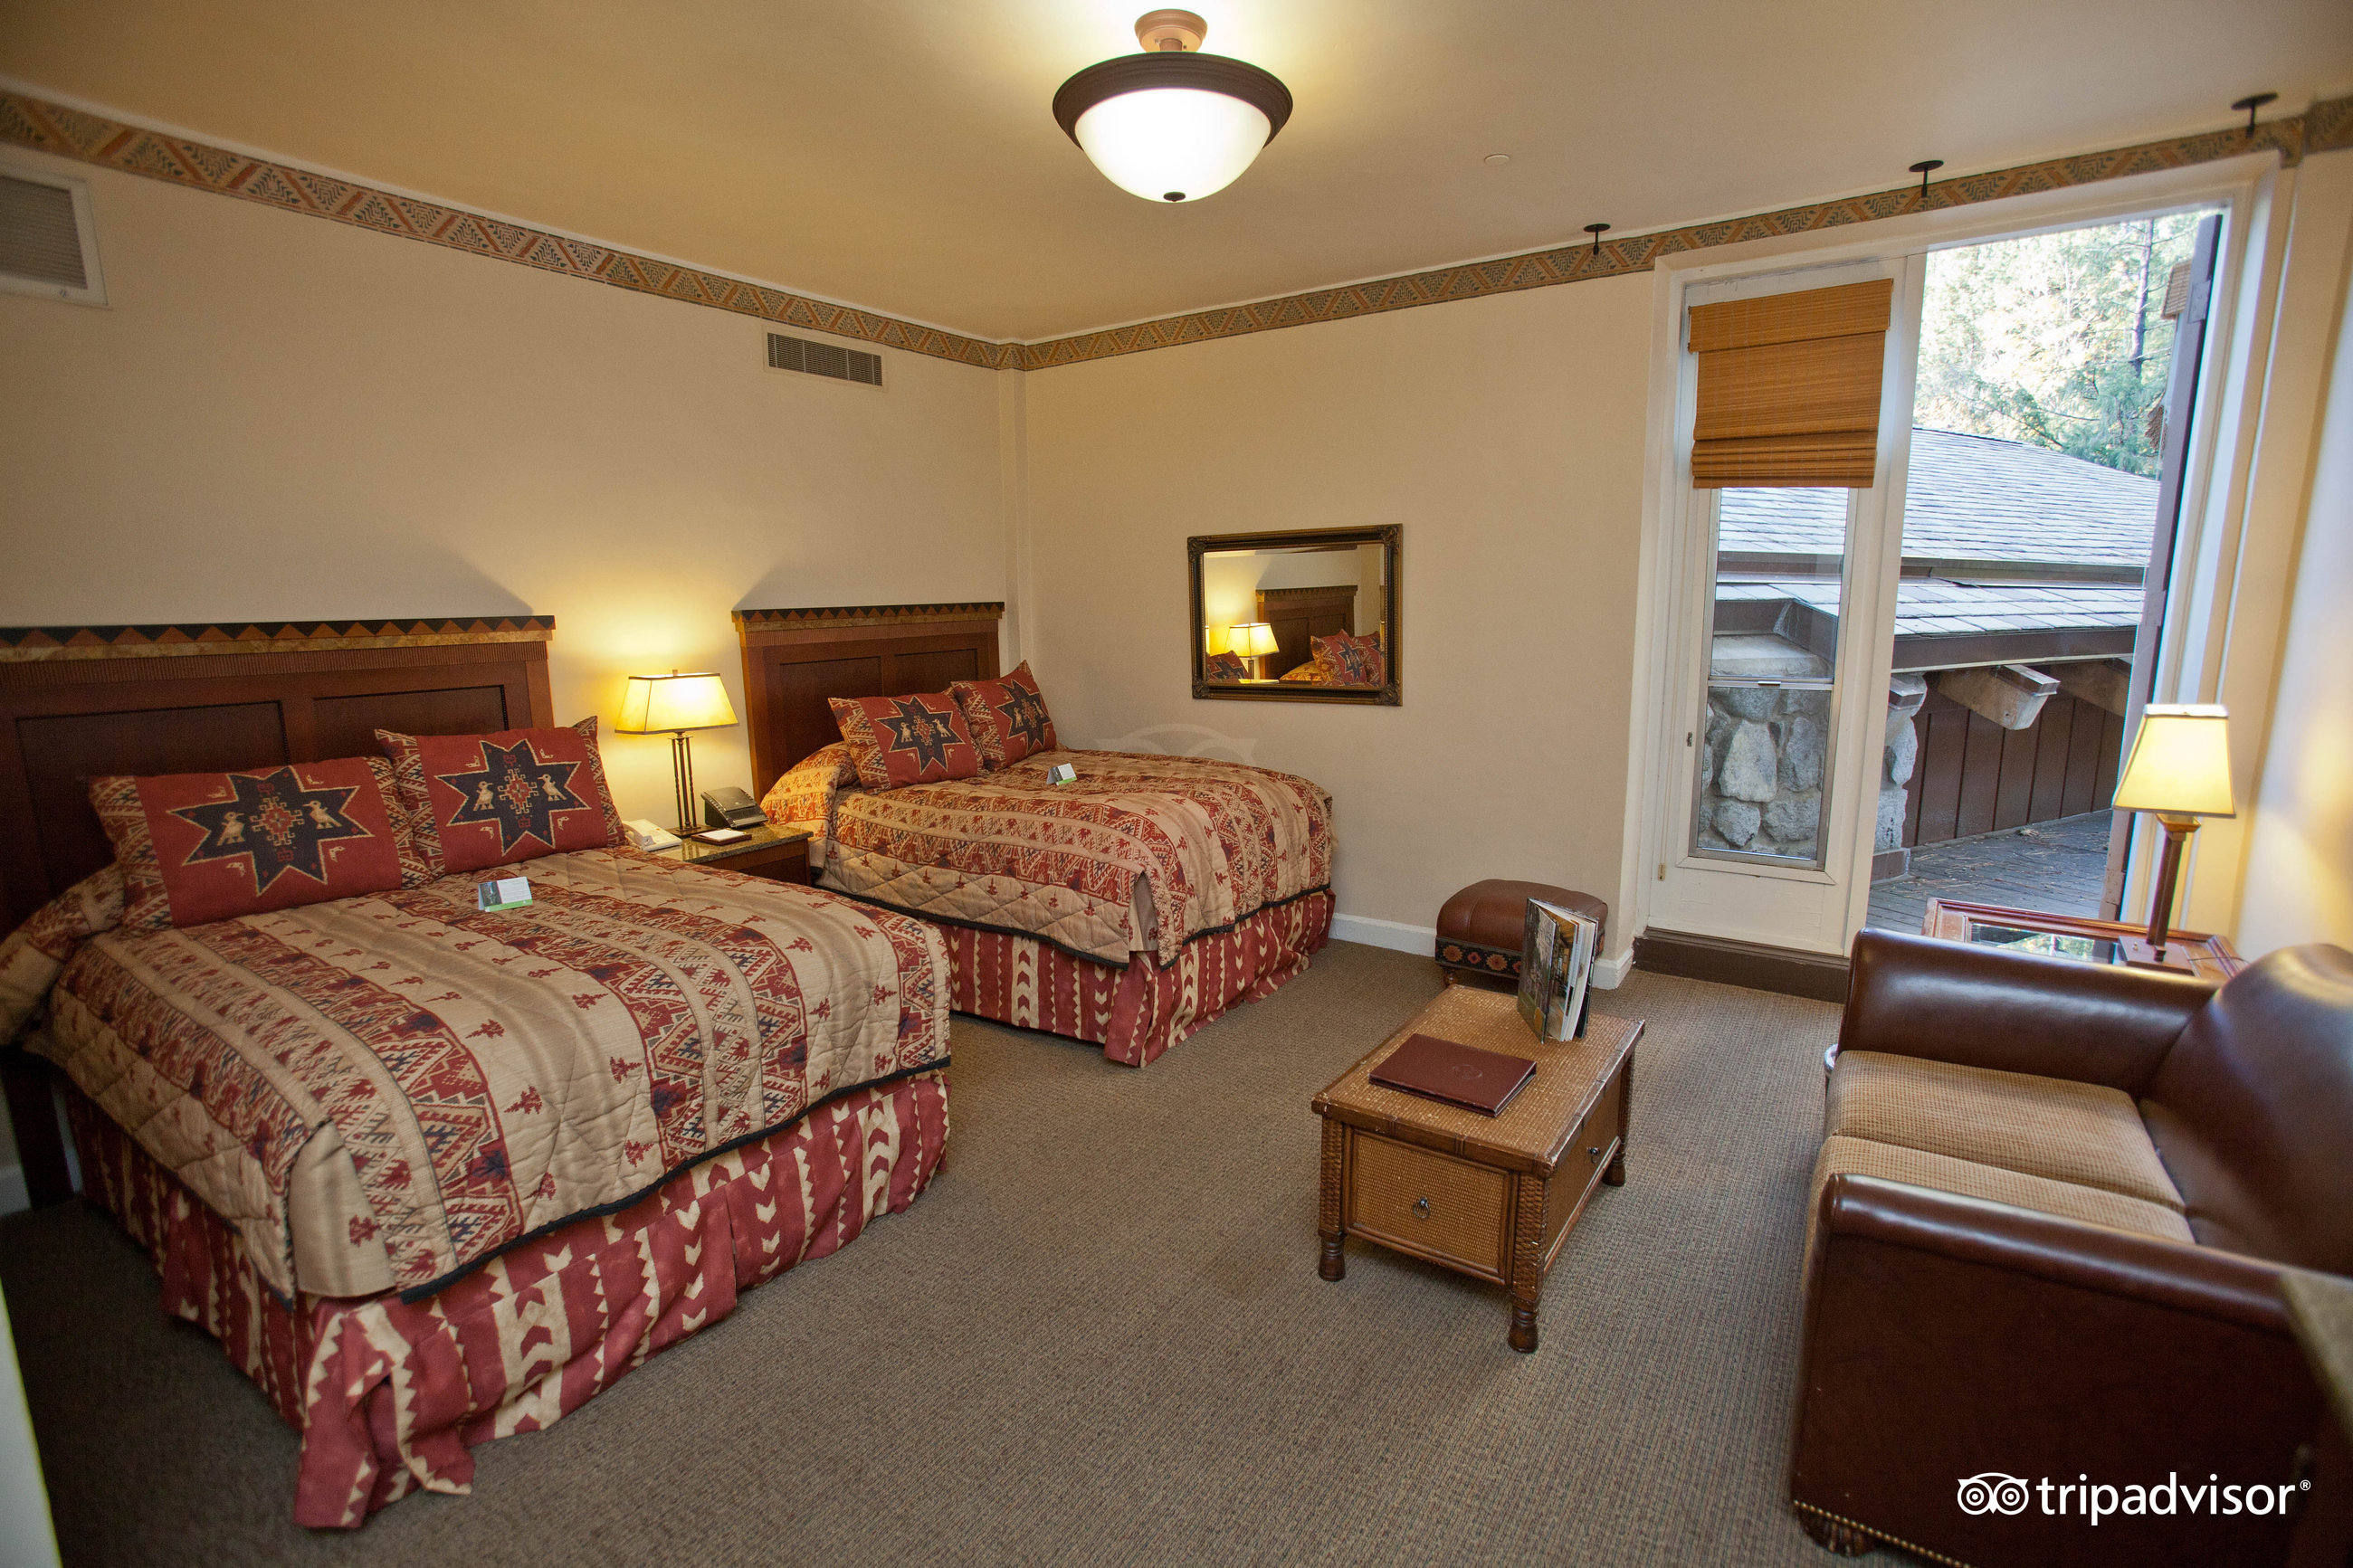 double occupancy room assigned by hotel at check in